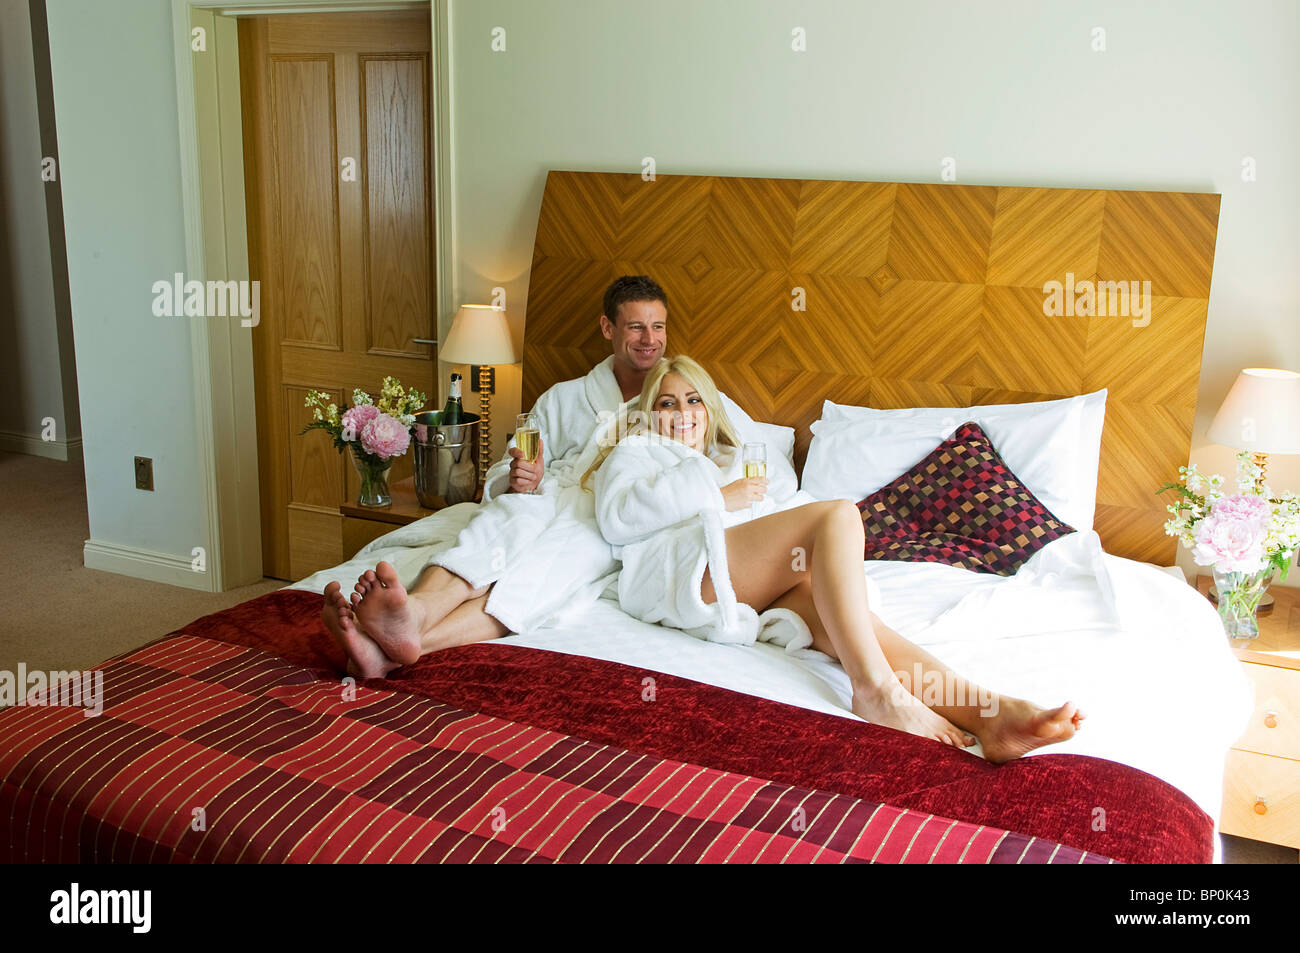 Northern Ireland, Fermanagh, Enniskillen. Couple relax with a glass of champagne in their bedroom at the Killyhevlin - Stock Image